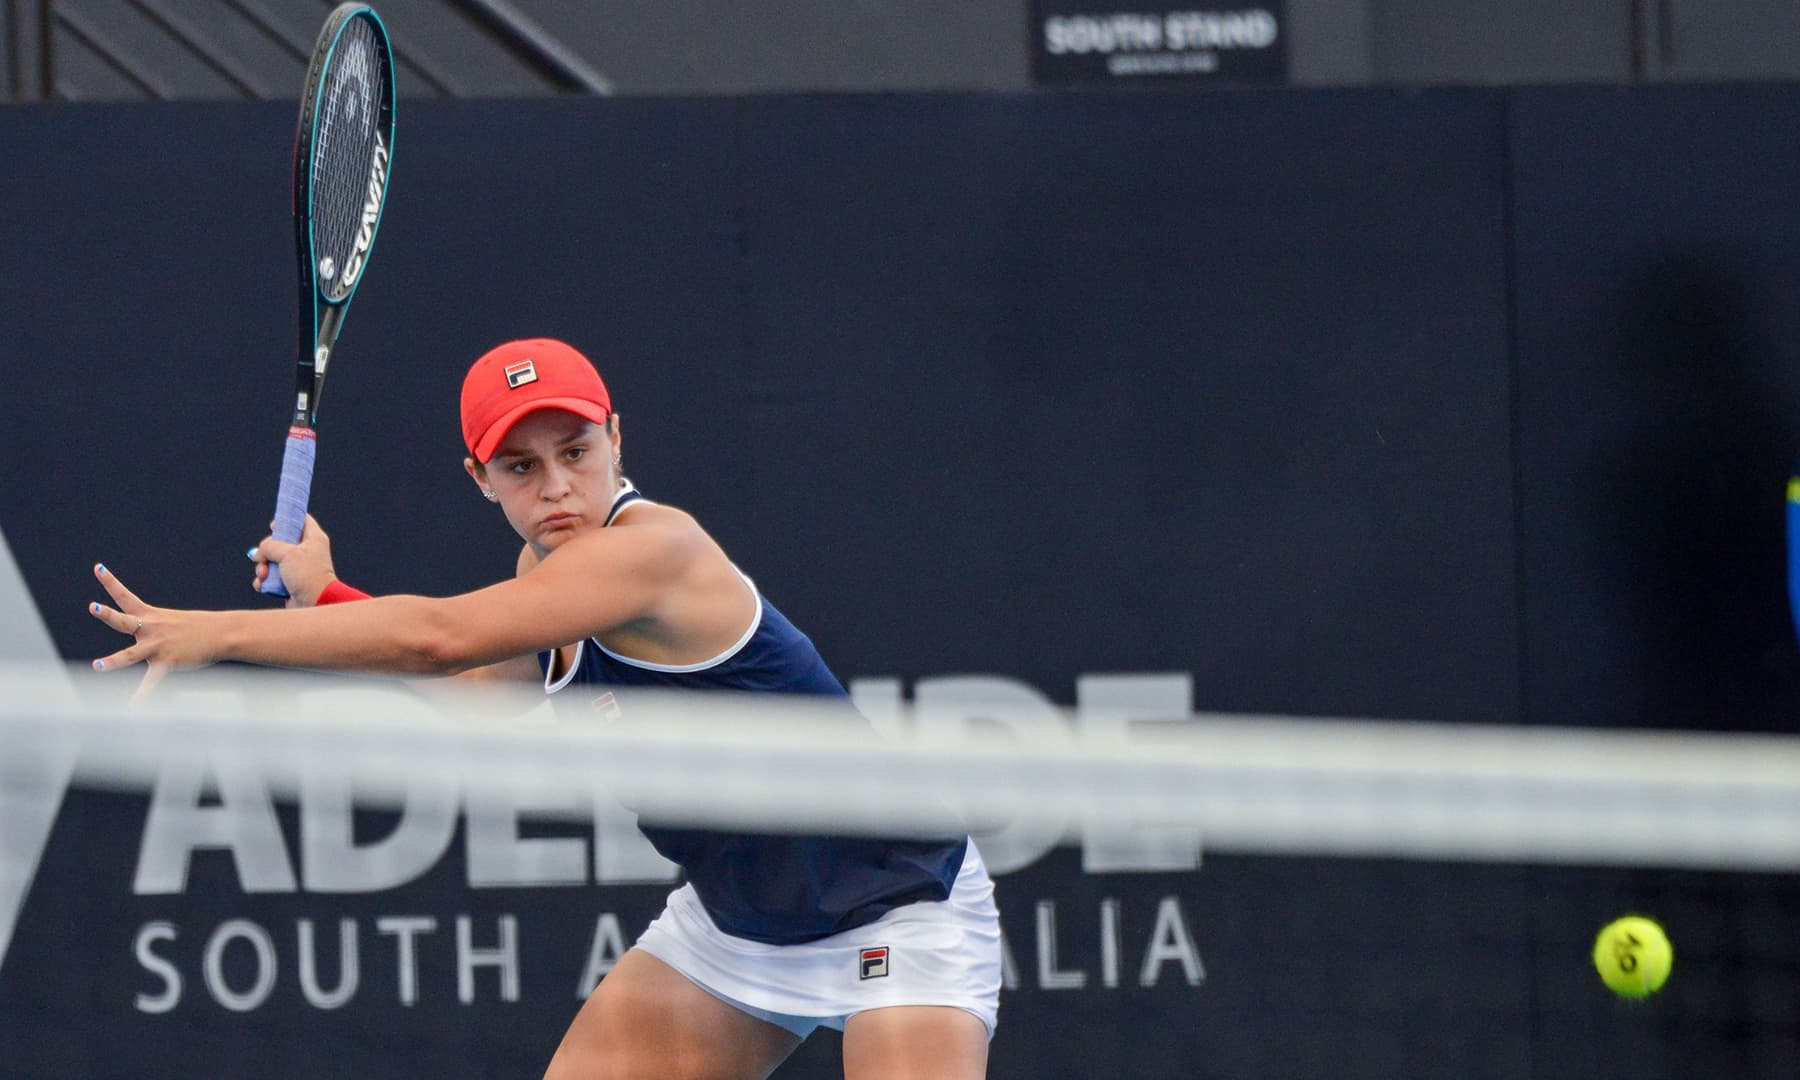 Ashleigh Barty of Australia during the women's second round singles match at the Adelaide International tennis tournament on Jan 14. — AFP